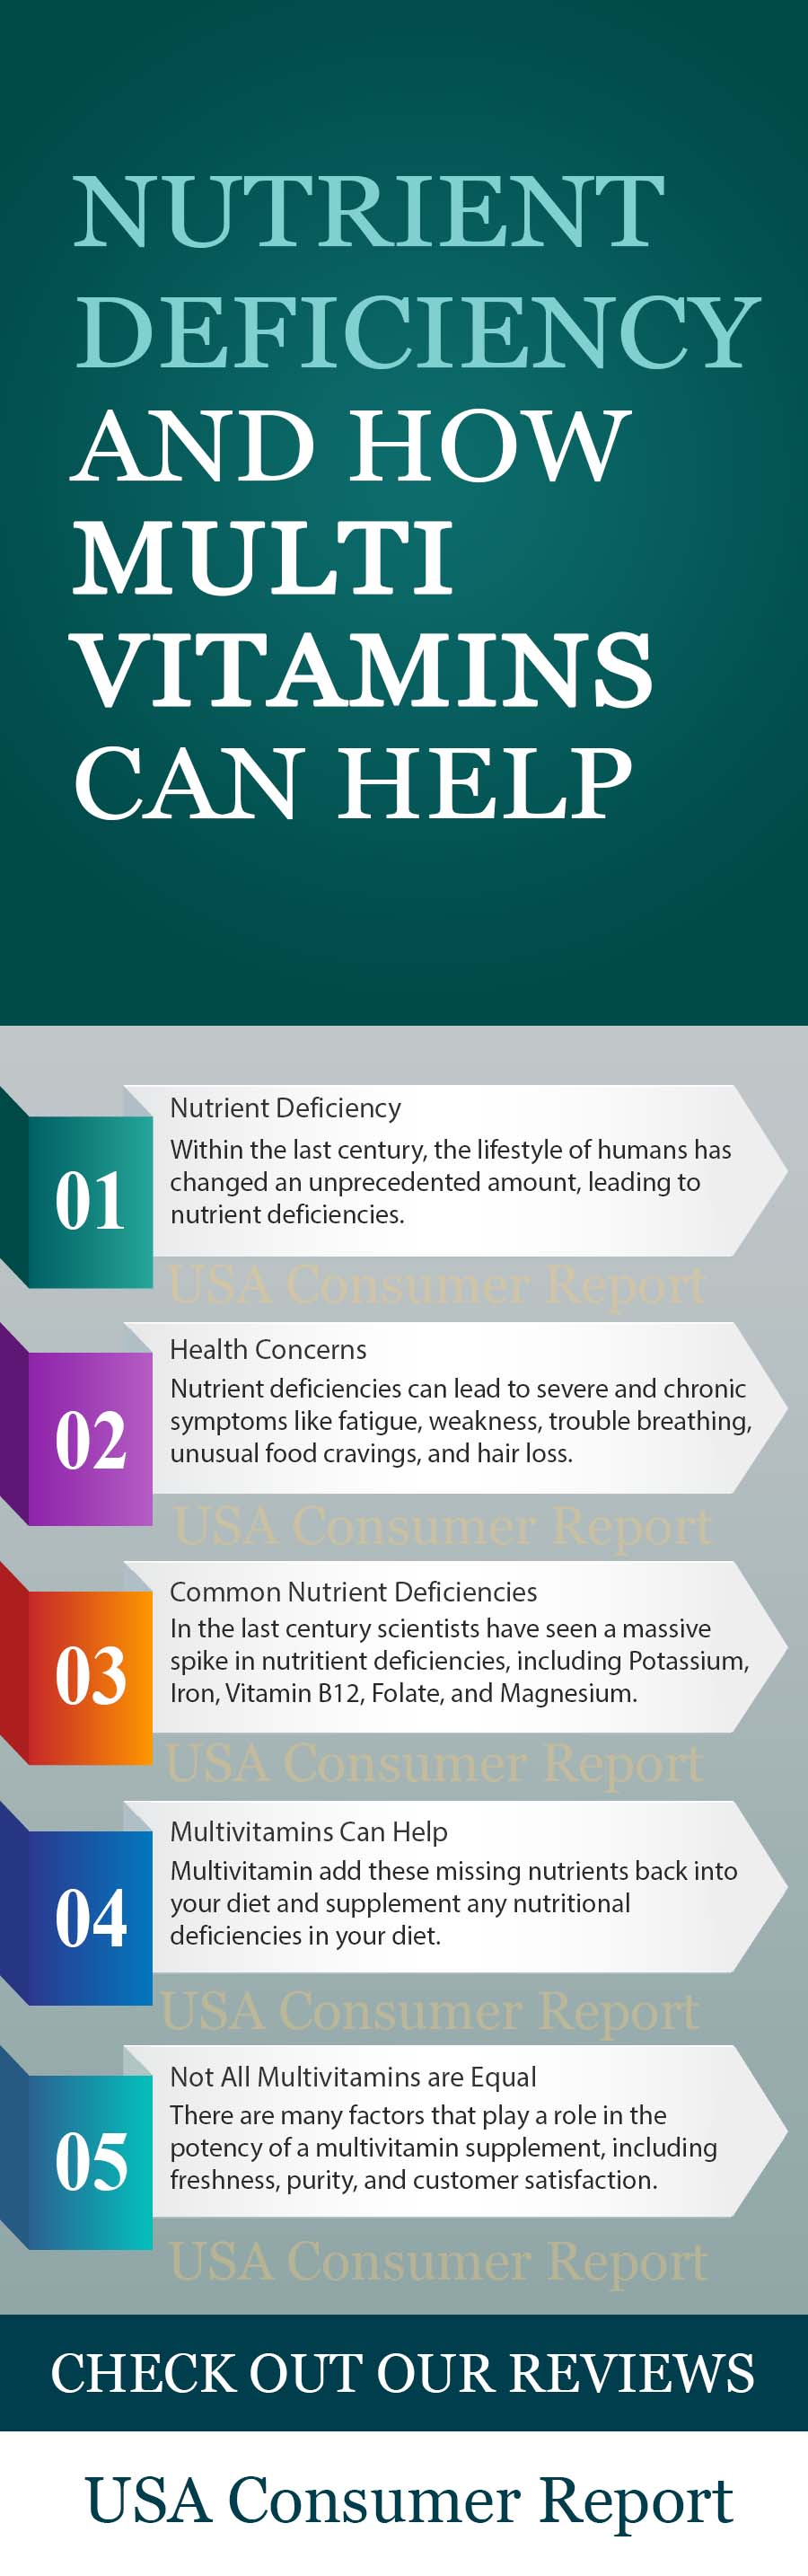 Infographic on nutrient deficiency and how multivitamins can help